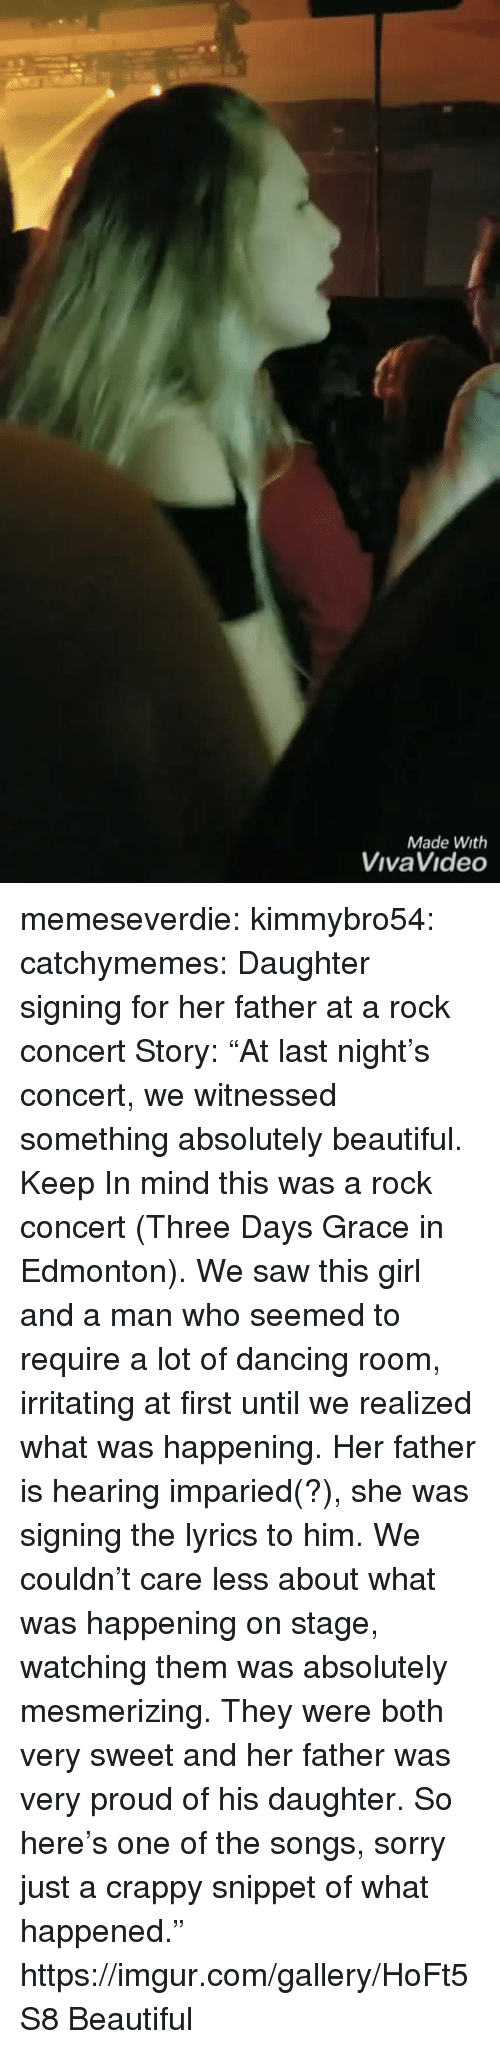 "irritating: Made With  VivaVideo memeseverdie: kimmybro54:  catchymemes:  Daughter signing for her father at a rock concert   Story: ""At last night's concert, we witnessed something absolutely beautiful. Keep In mind this was a rock concert (Three Days Grace in Edmonton). We saw this girl and a man who seemed to require a lot of dancing room, irritating at first until we realized what was happening. Her father is hearing imparied(?), she was signing the lyrics to him. We couldn't care less about what was happening on stage, watching them was absolutely mesmerizing. They were both very sweet and her father was very proud of his daughter. So here's one of the songs, sorry just a crappy snippet of what happened.""  https://imgur.com/gallery/HoFt5S8   Beautiful"